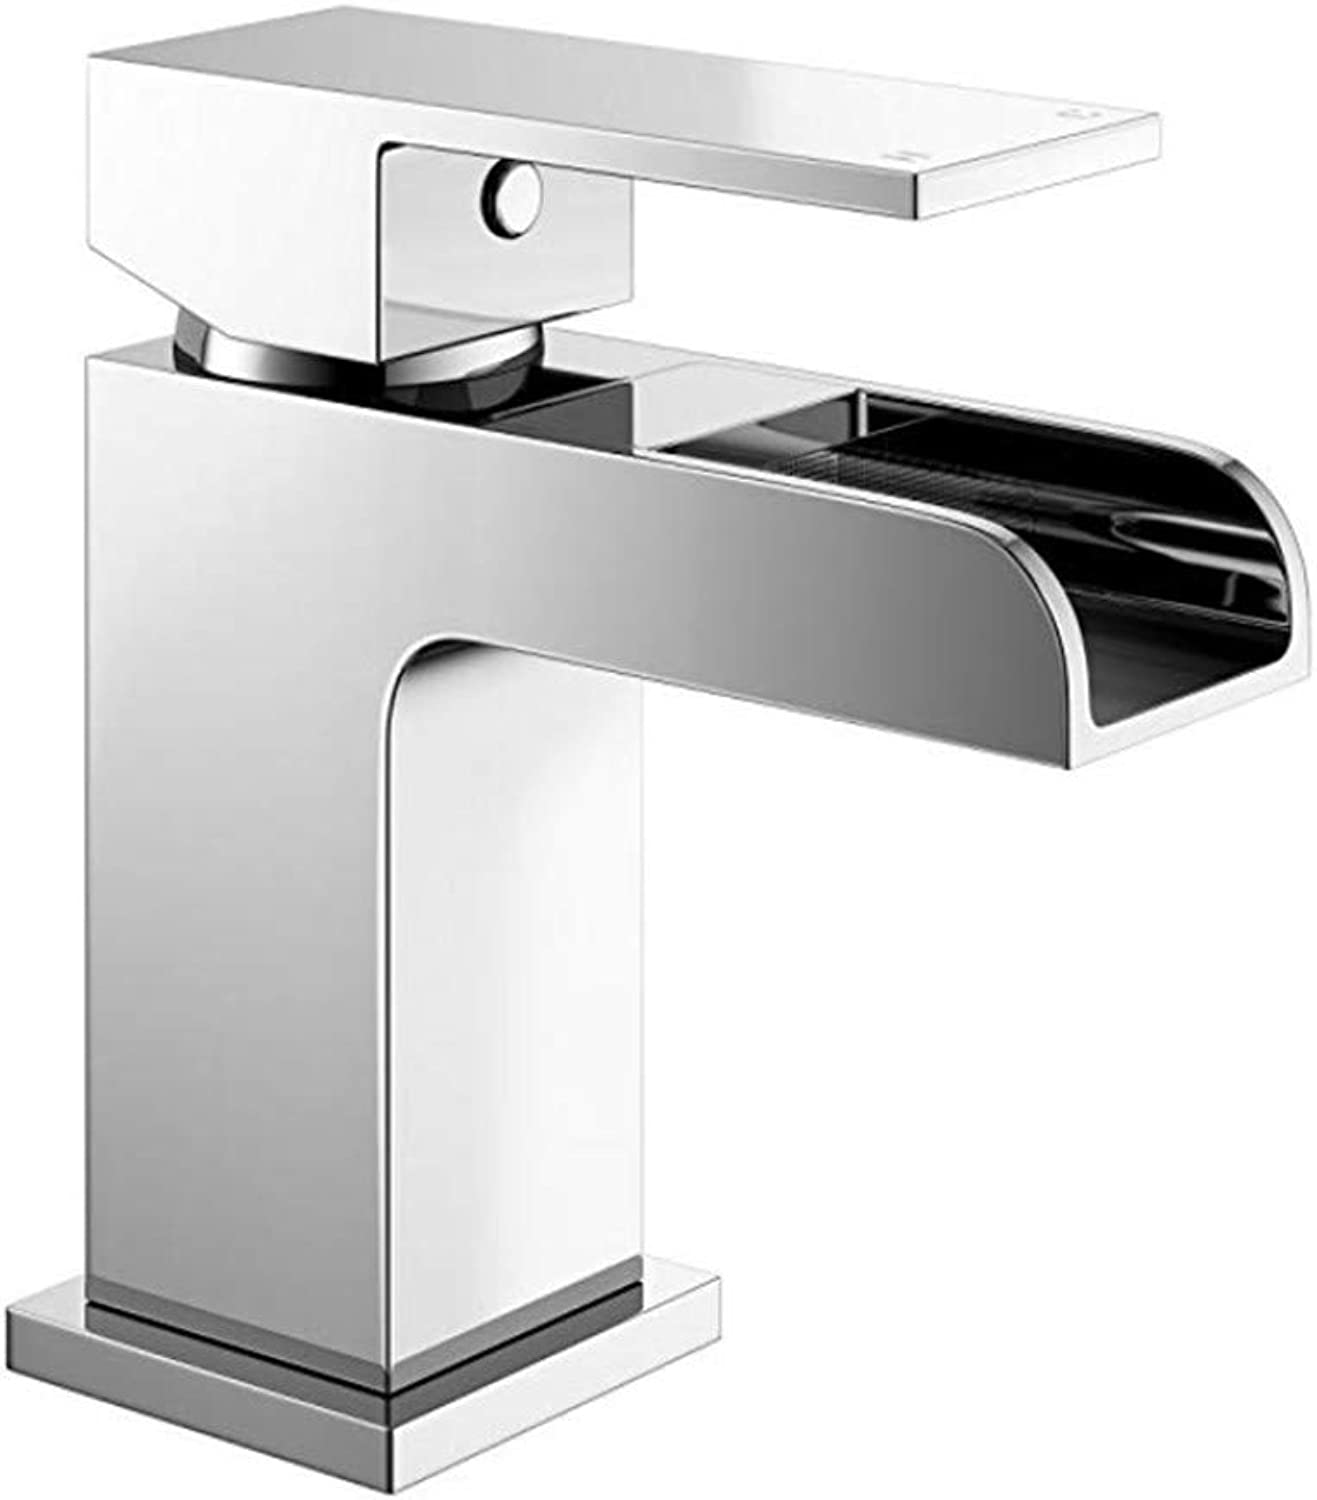 Kitchen Sink Taps Bathroom Taps Chrome Waterfall Basin Sink Mixer Tap Modern Luxury Bathroom Lever Faucet